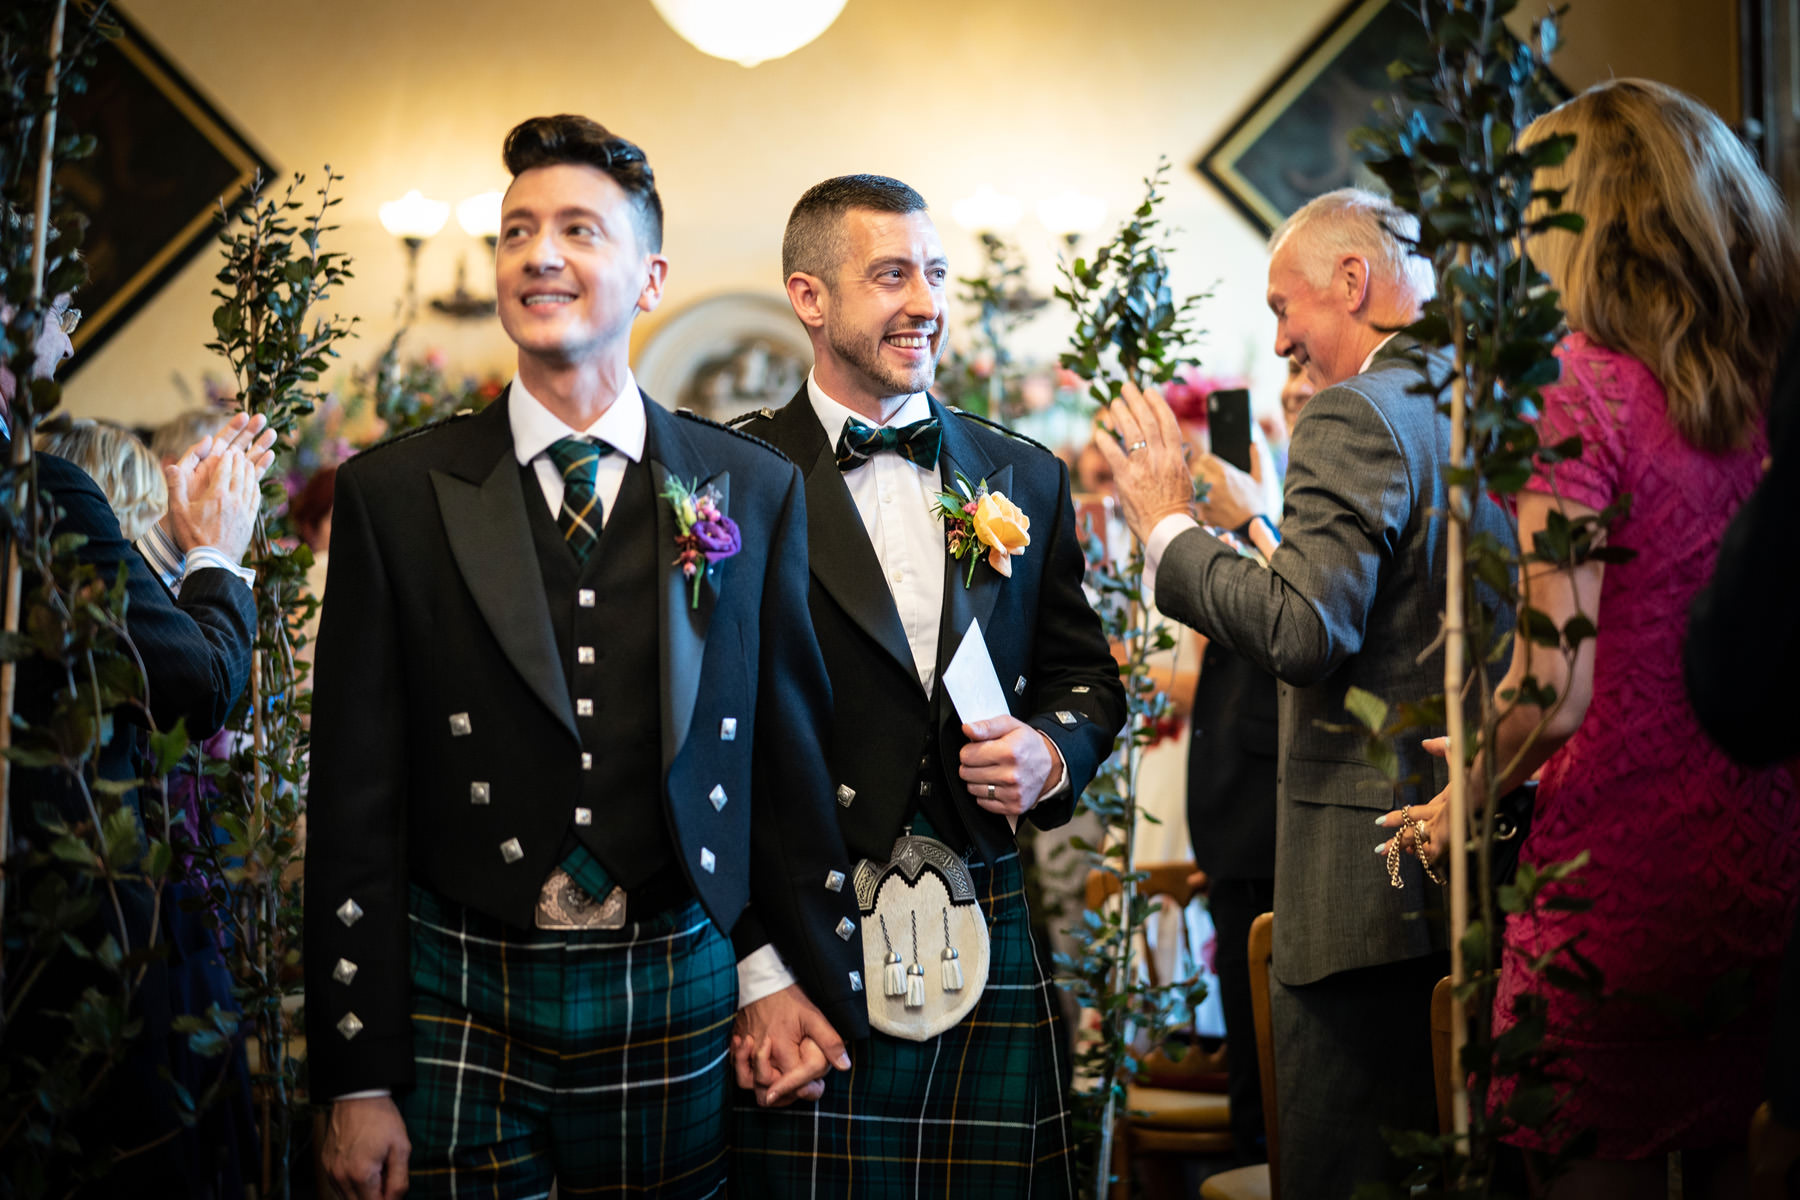 Newlyweds in kilts leave the Oak room at The Elvetham Hotel